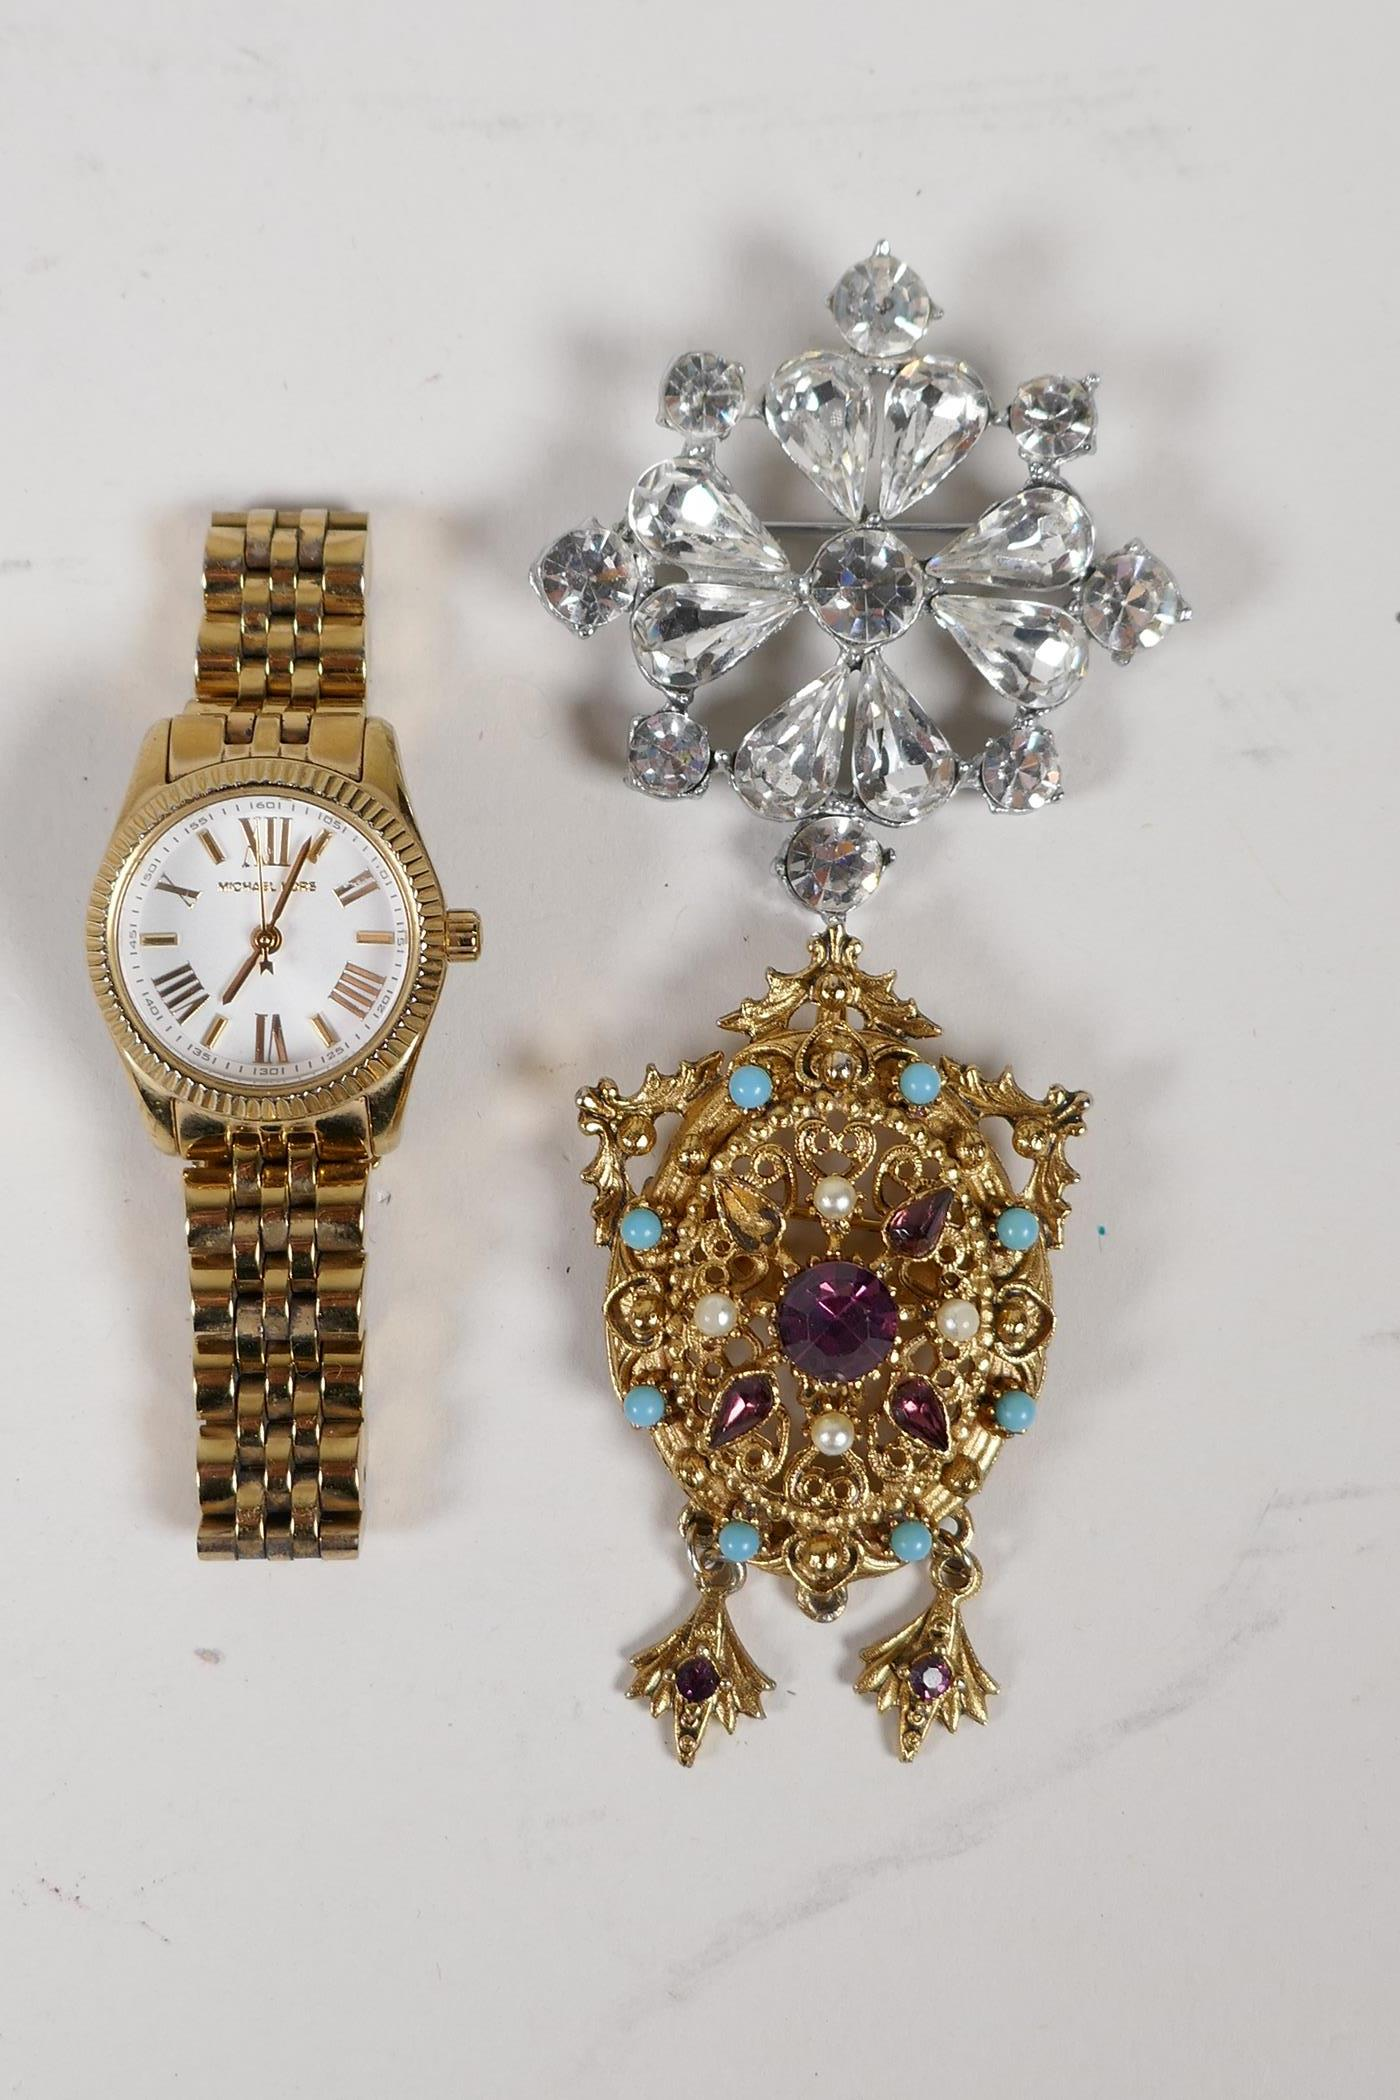 A lady's Michael Kors gold plated steel wrist watch, a vintage gilt metal brooch set with semi